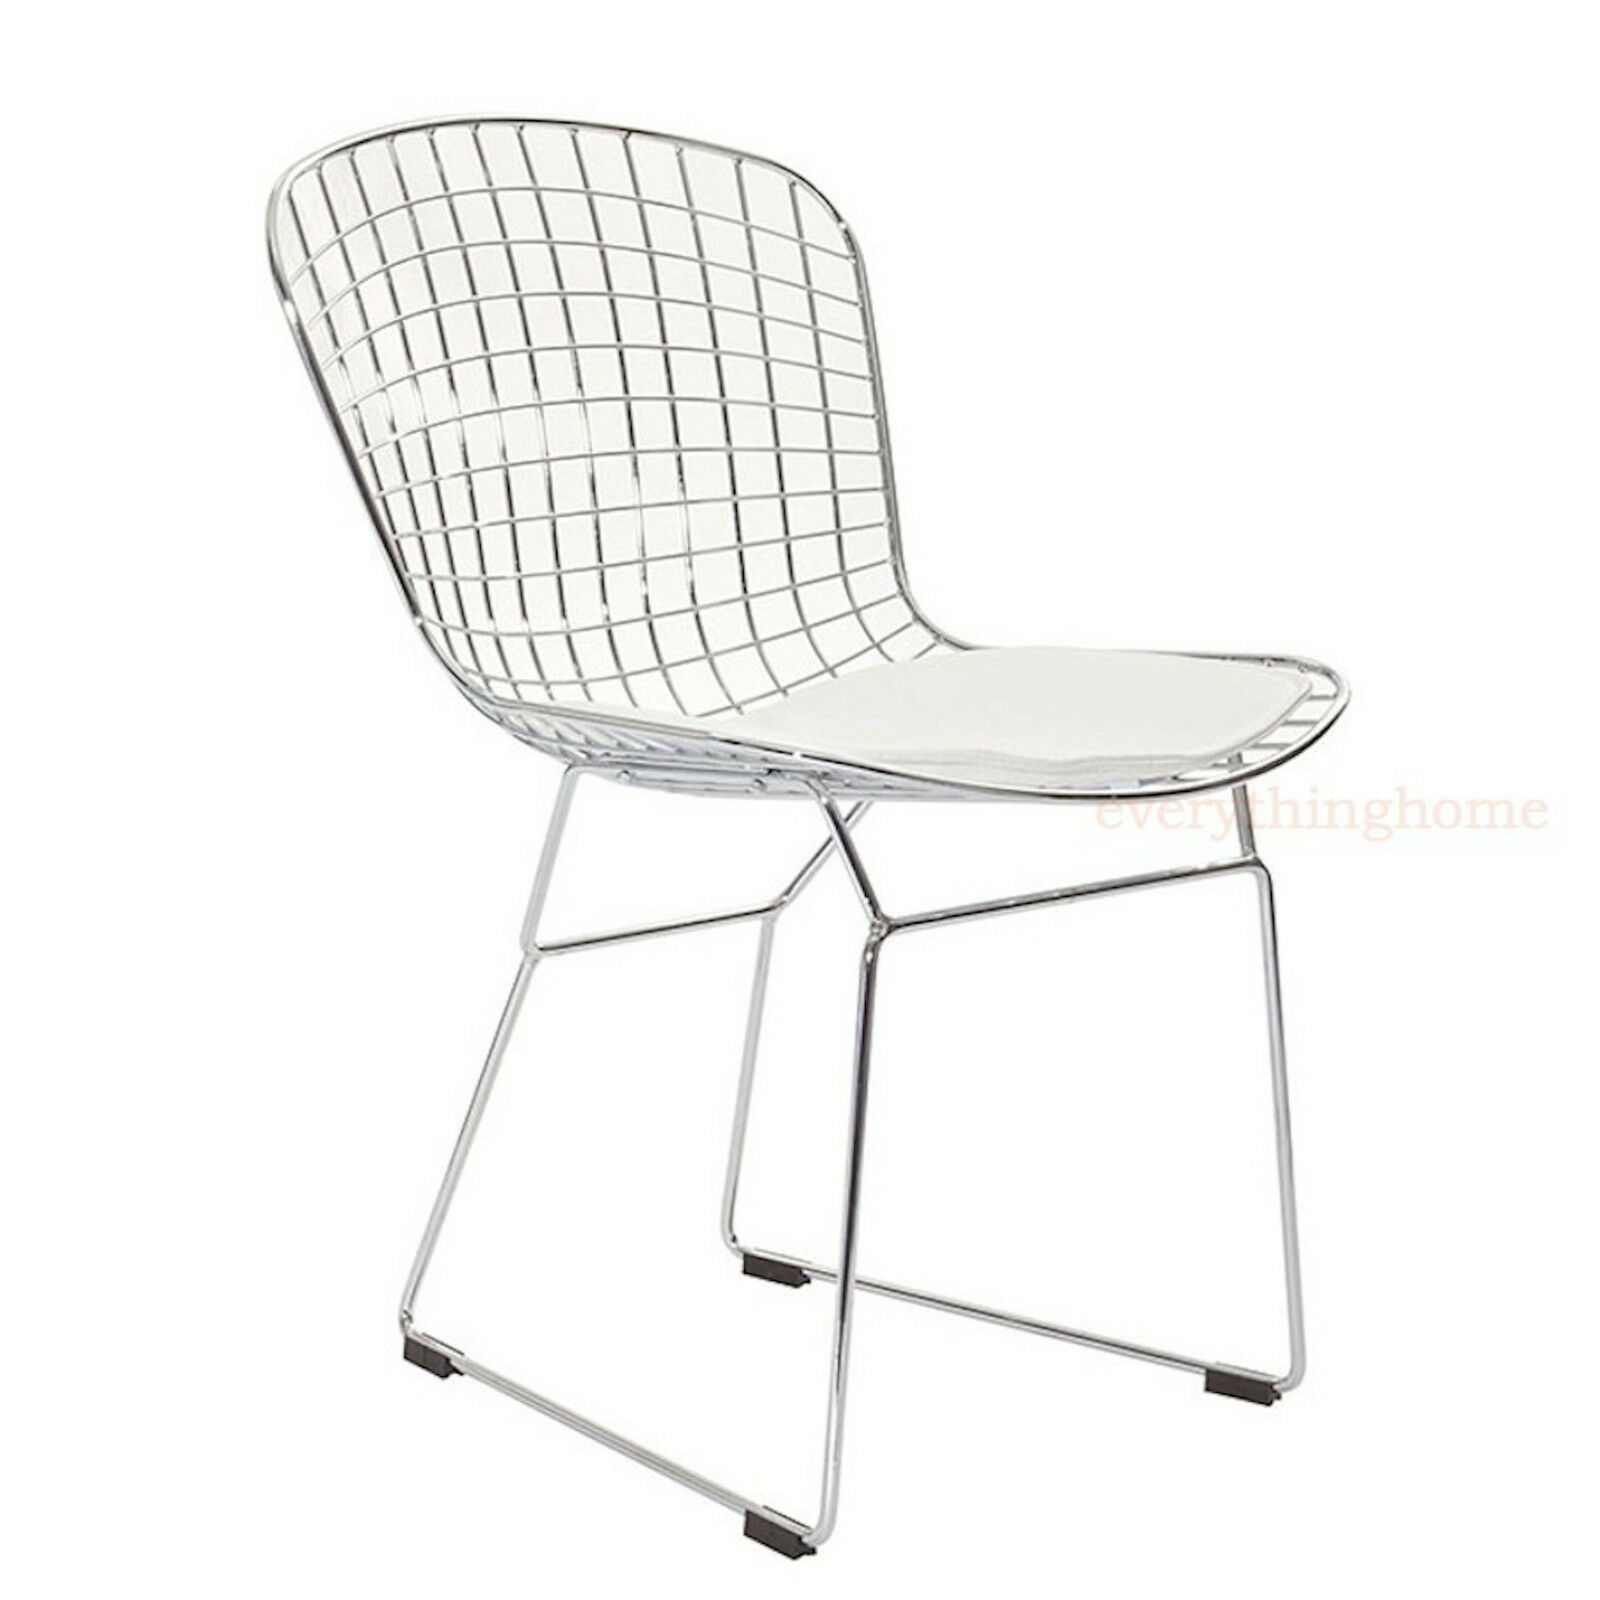 bertoia style chair dining side steel wire chrome mesh white pad 331 lb wt rate